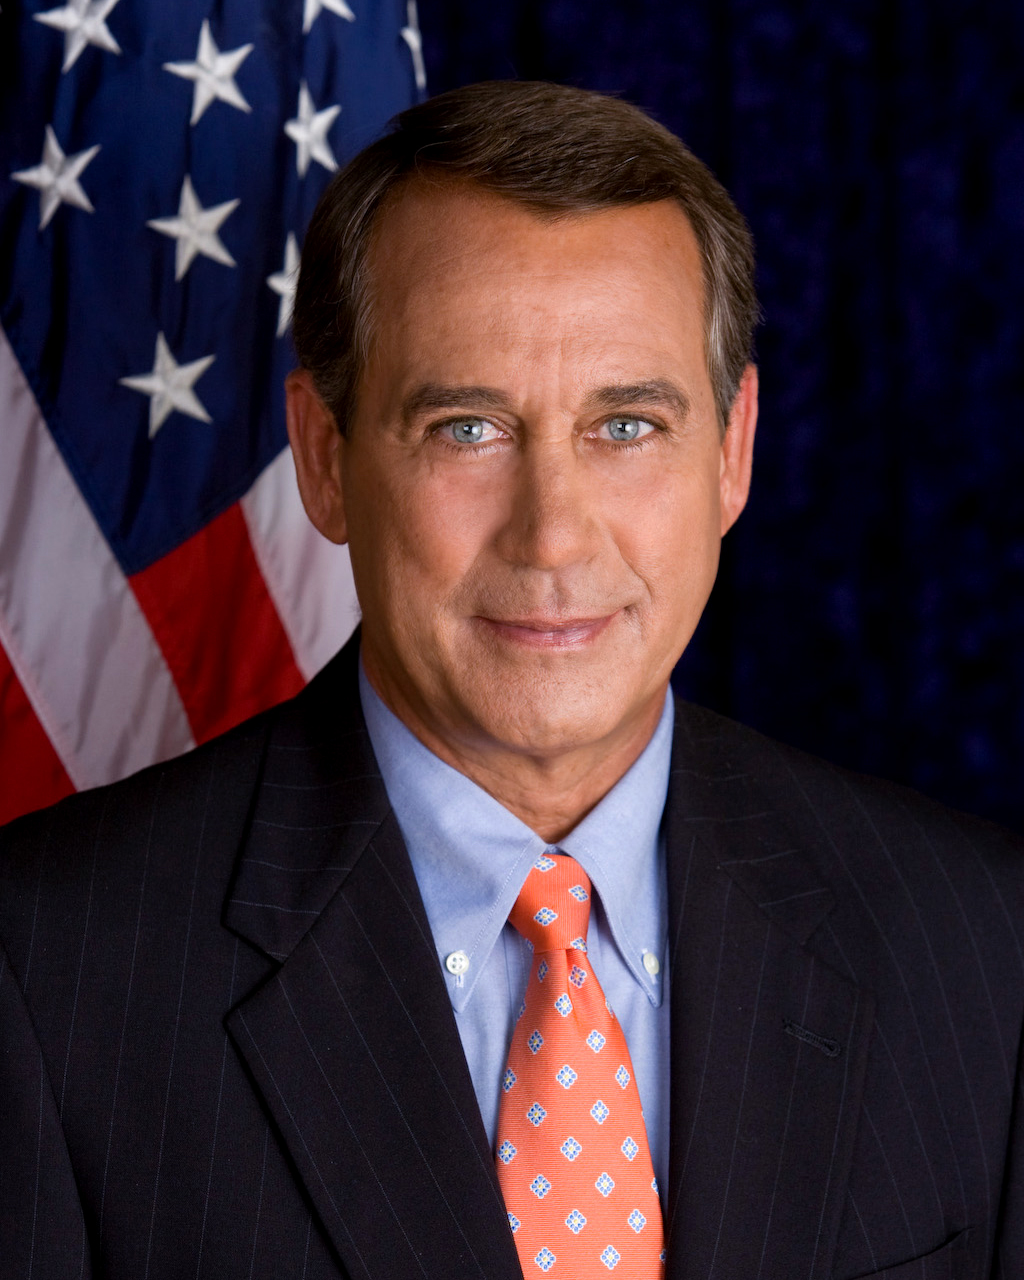 http://upload.wikimedia.org/wikipedia/commons/7/7d/John_Boehner_official_portrait.jpg